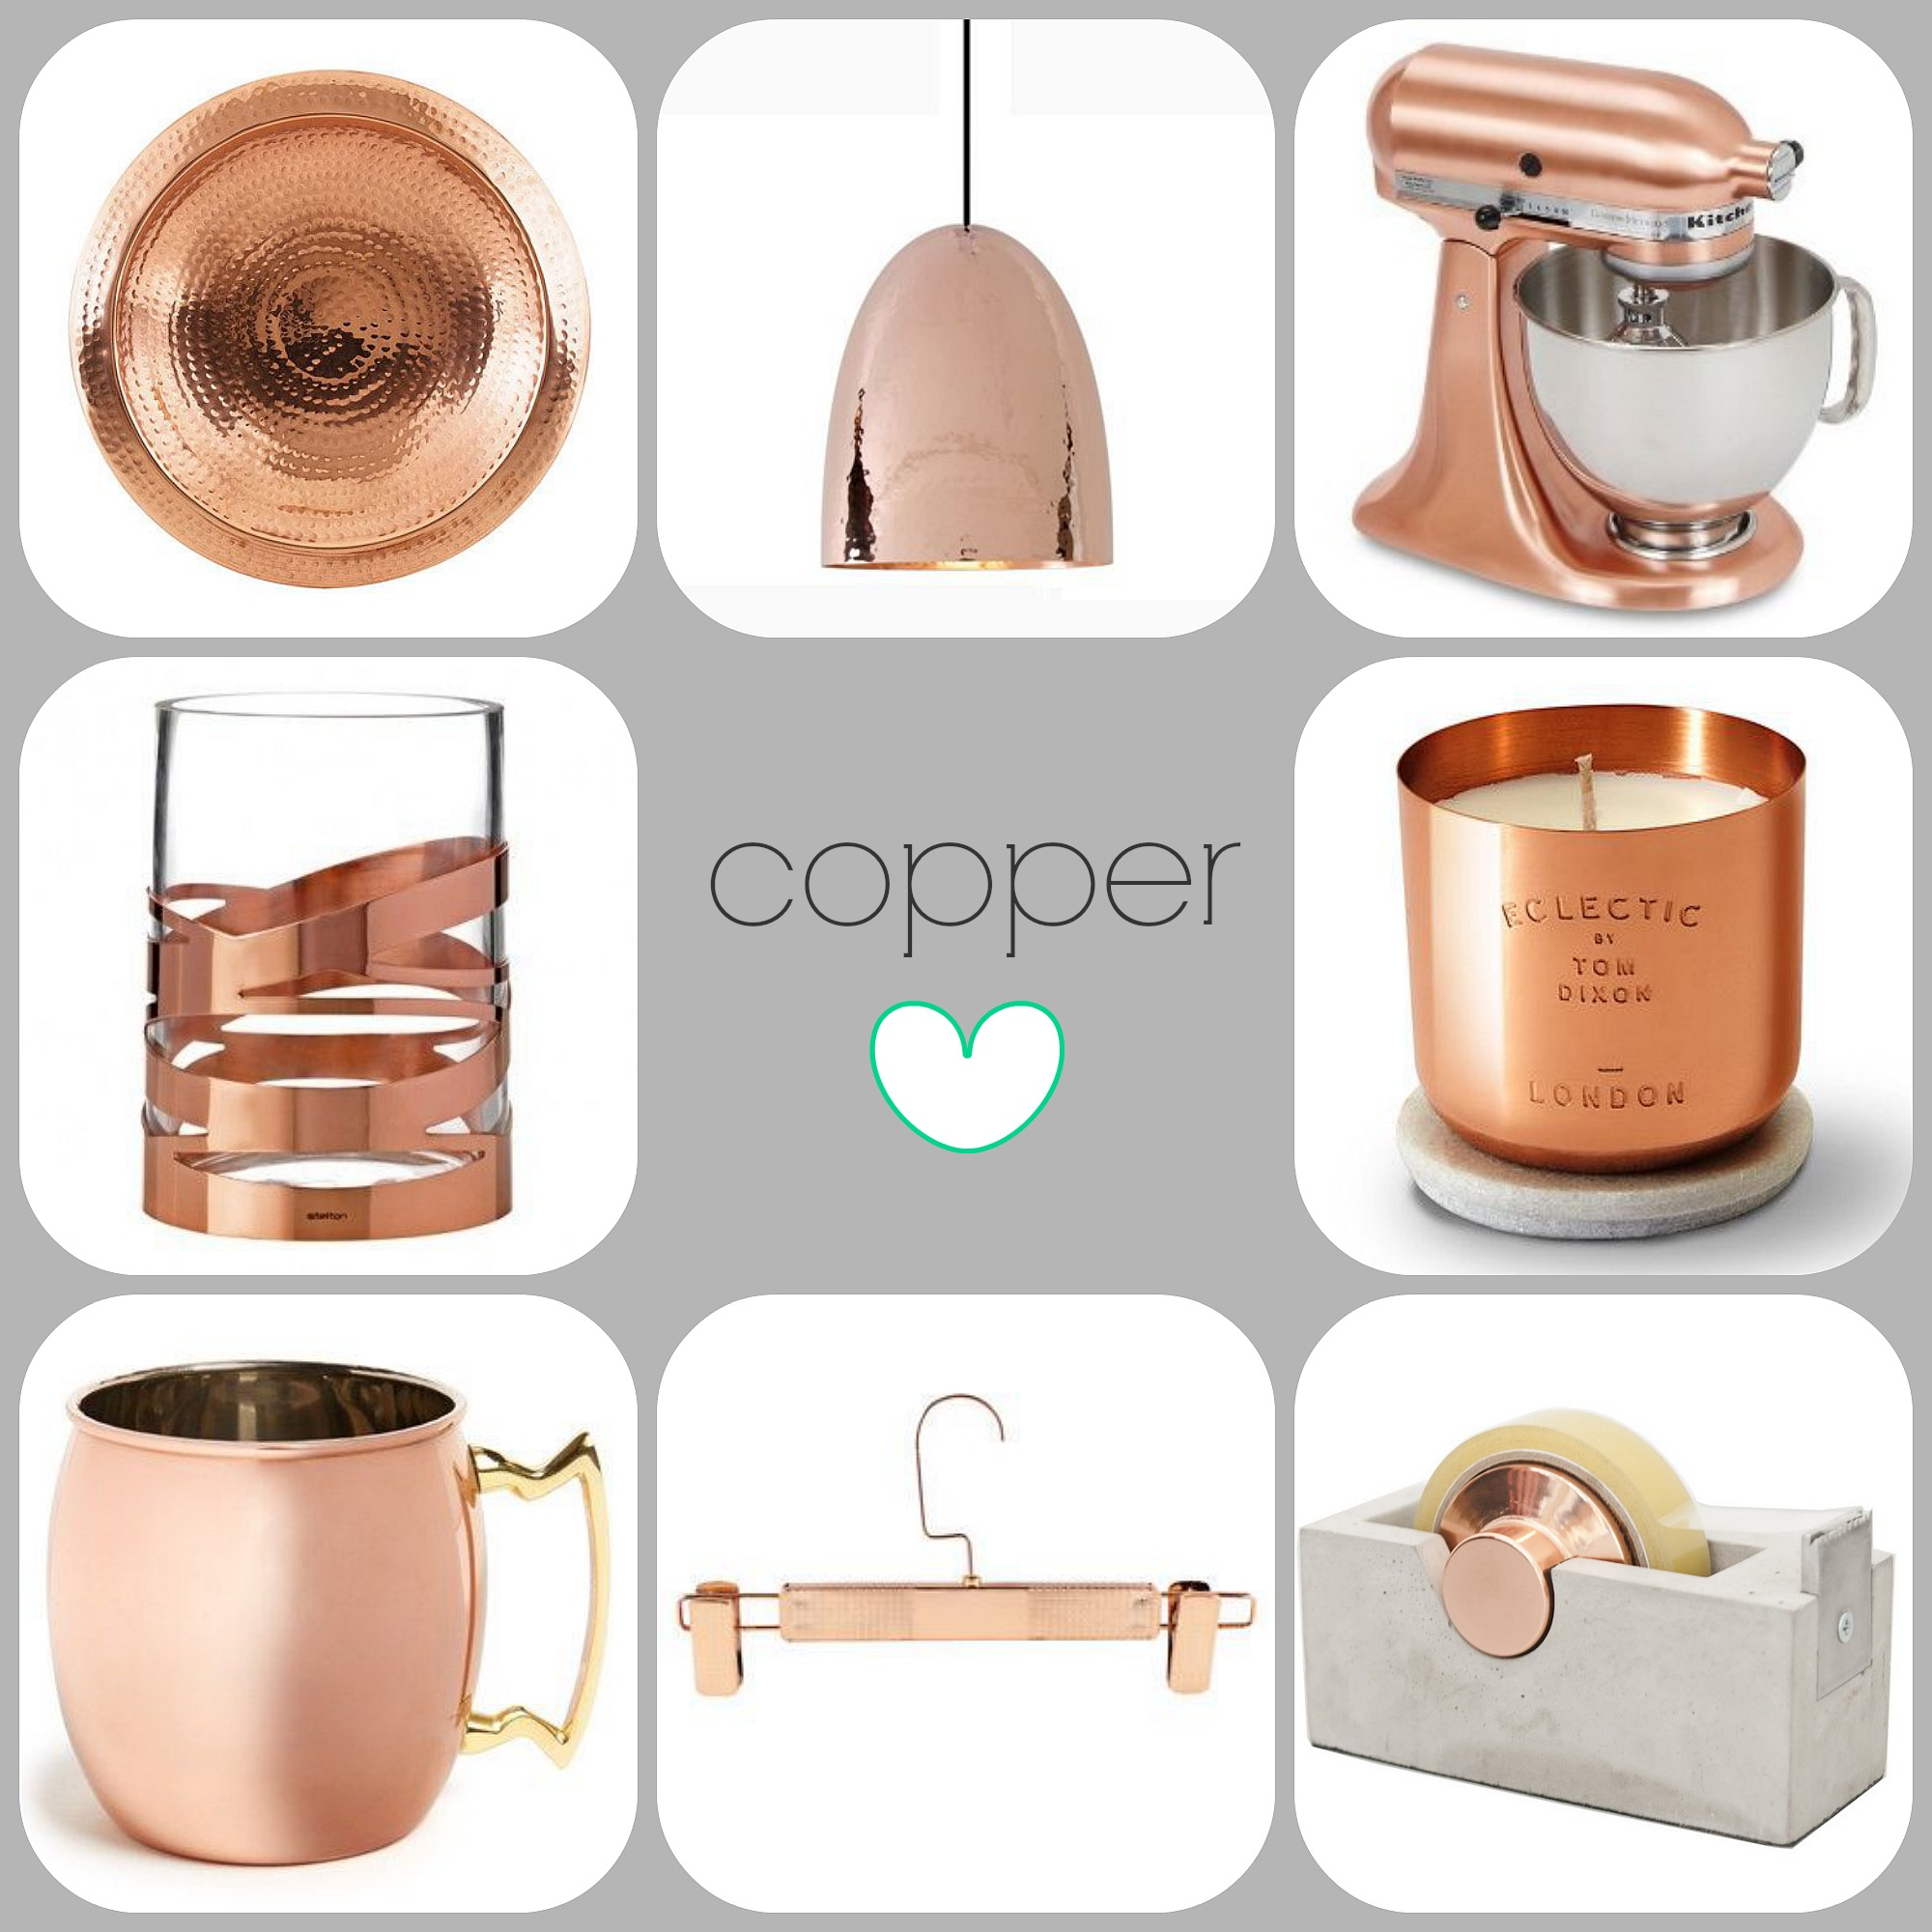 1000+ images about vanmariel.nl ♥ Copper on Pinterest.